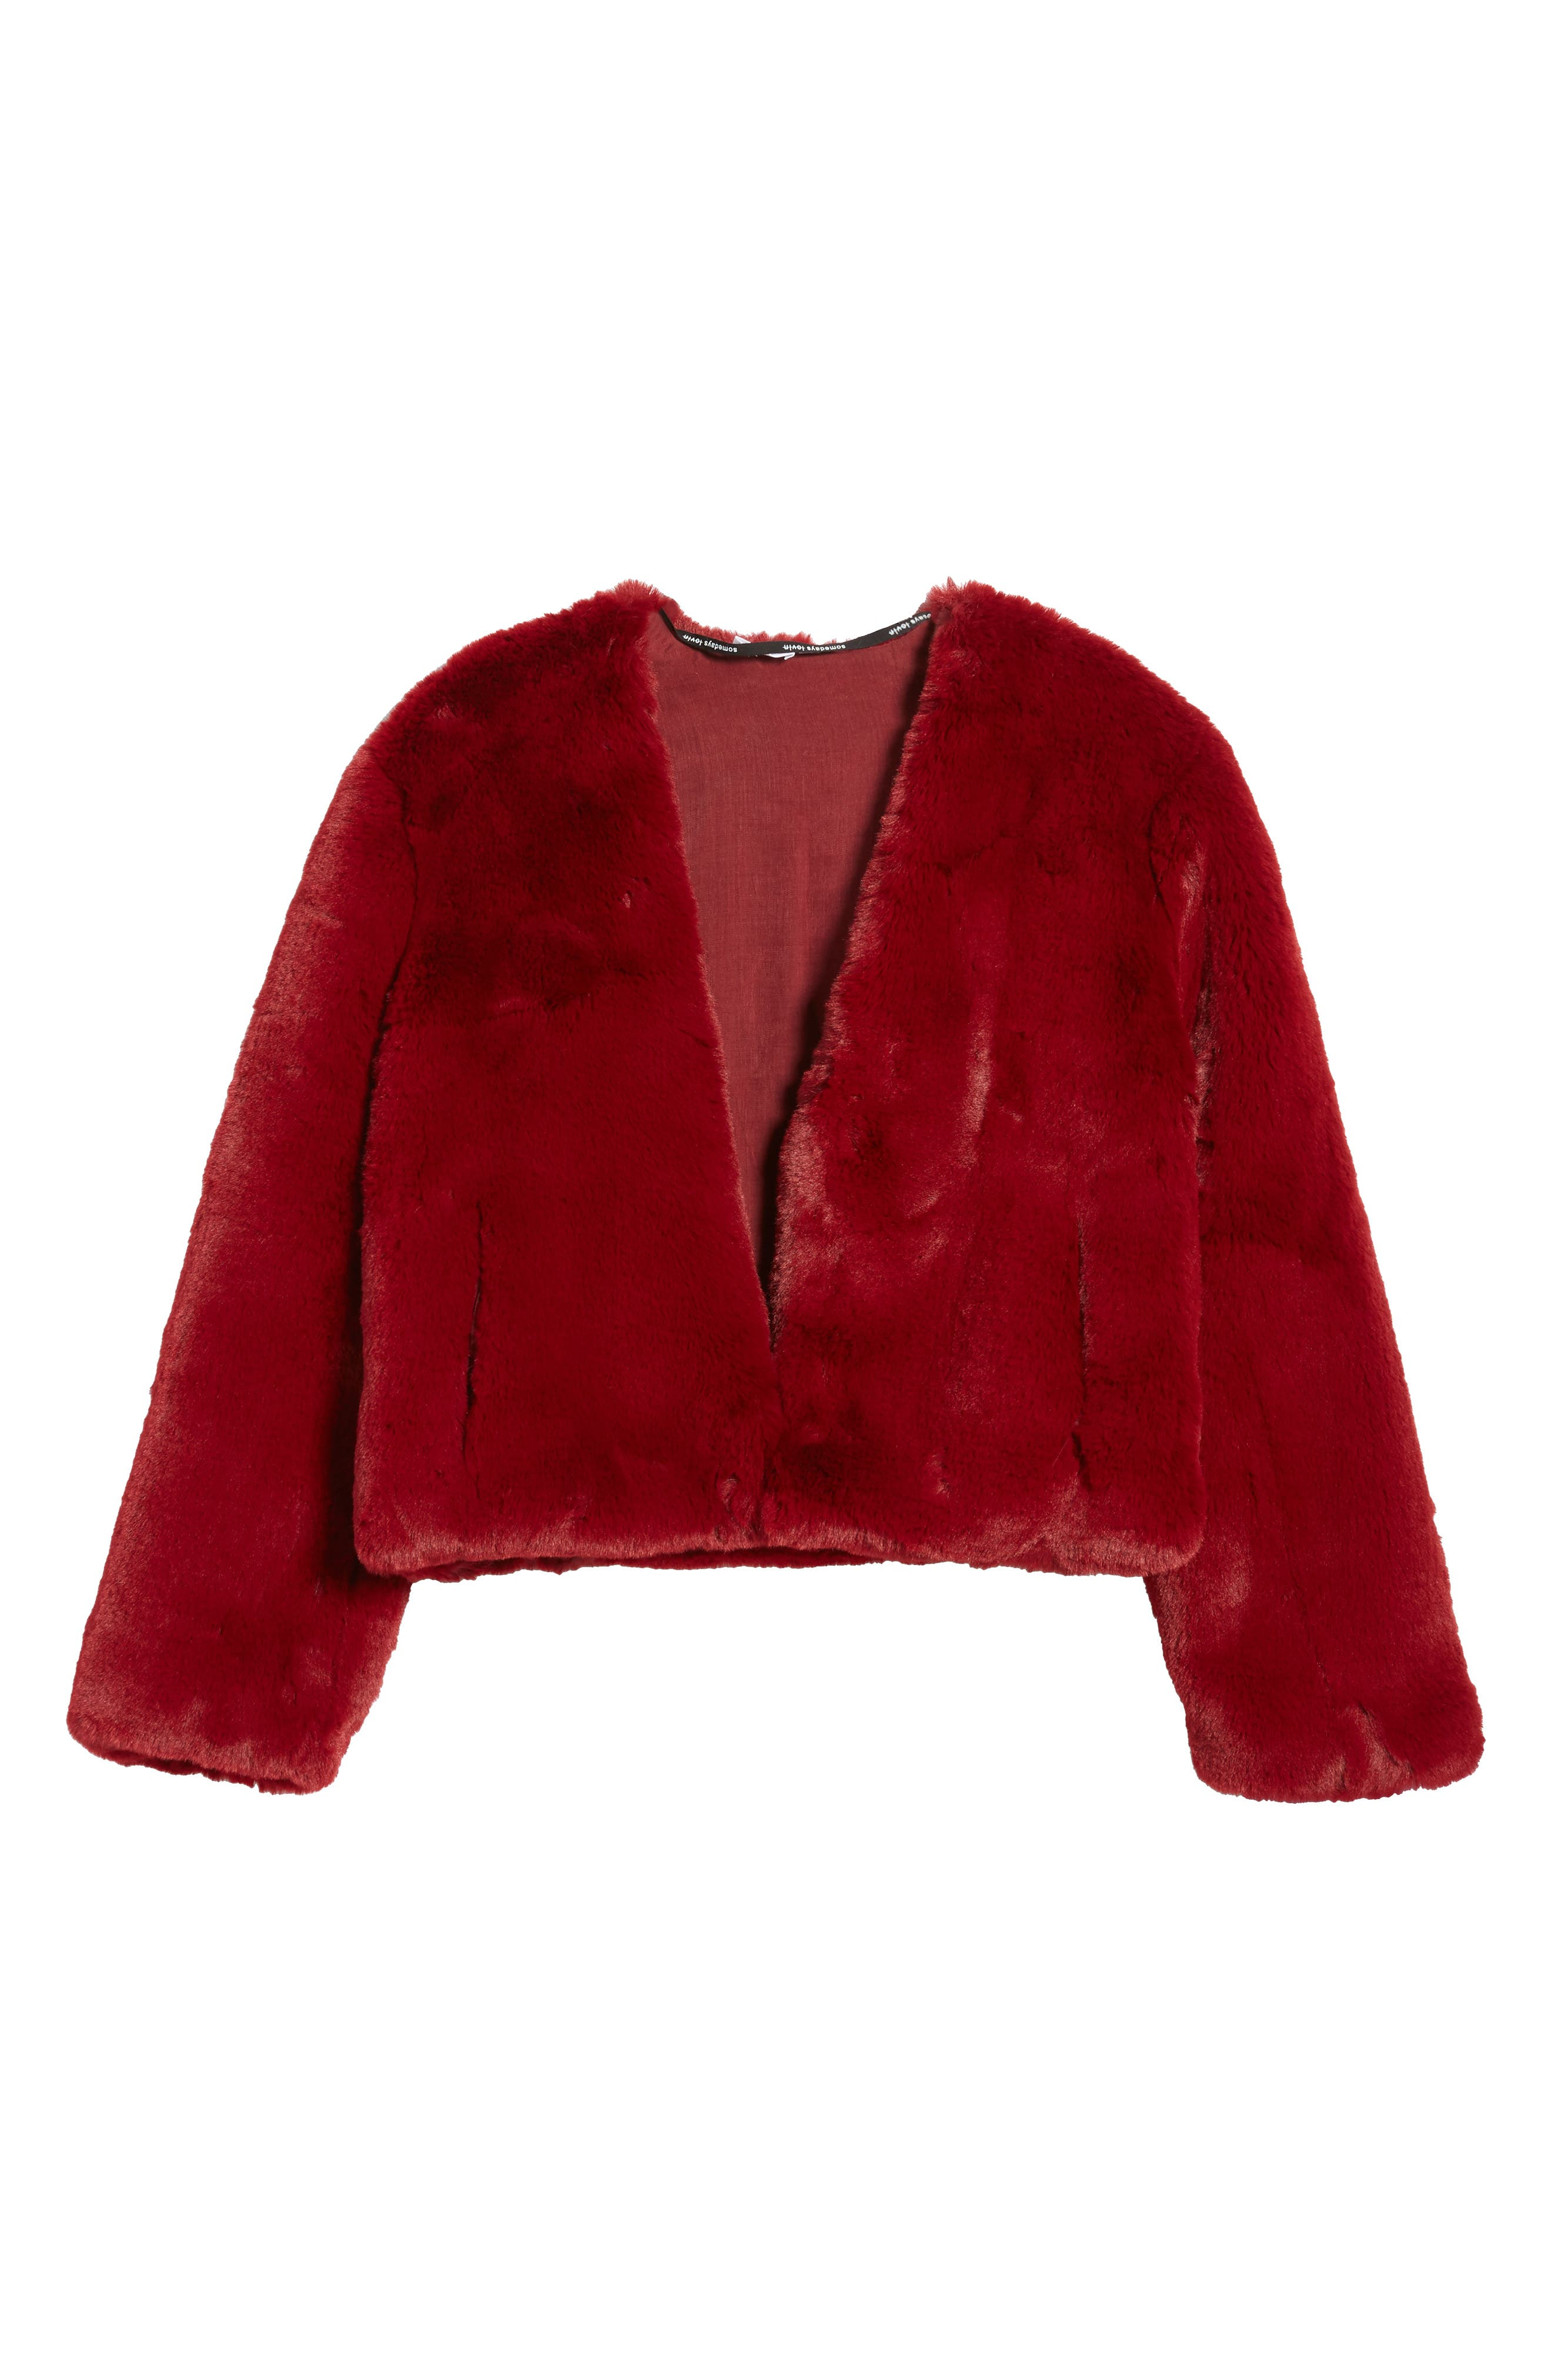 Lonely Hearts Faux Fur Jacket,                             Alternate thumbnail 6, color,                             Ruby